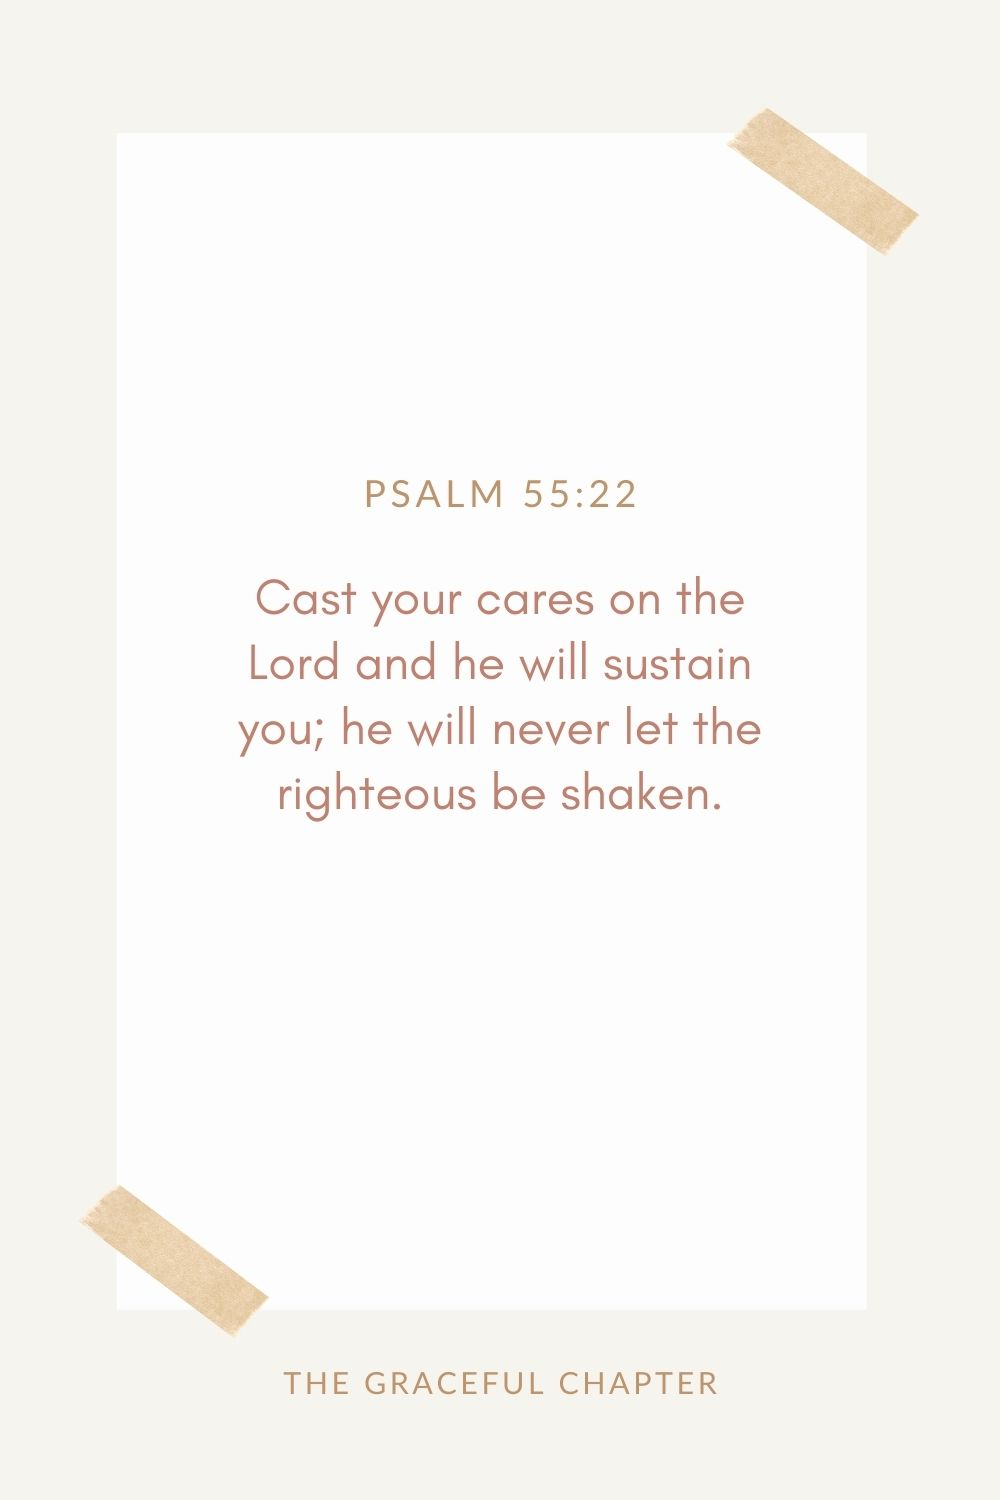 Cast your cares on the Lord and he will sustain you; he will never let  the righteous be shaken. Psalm 55:22